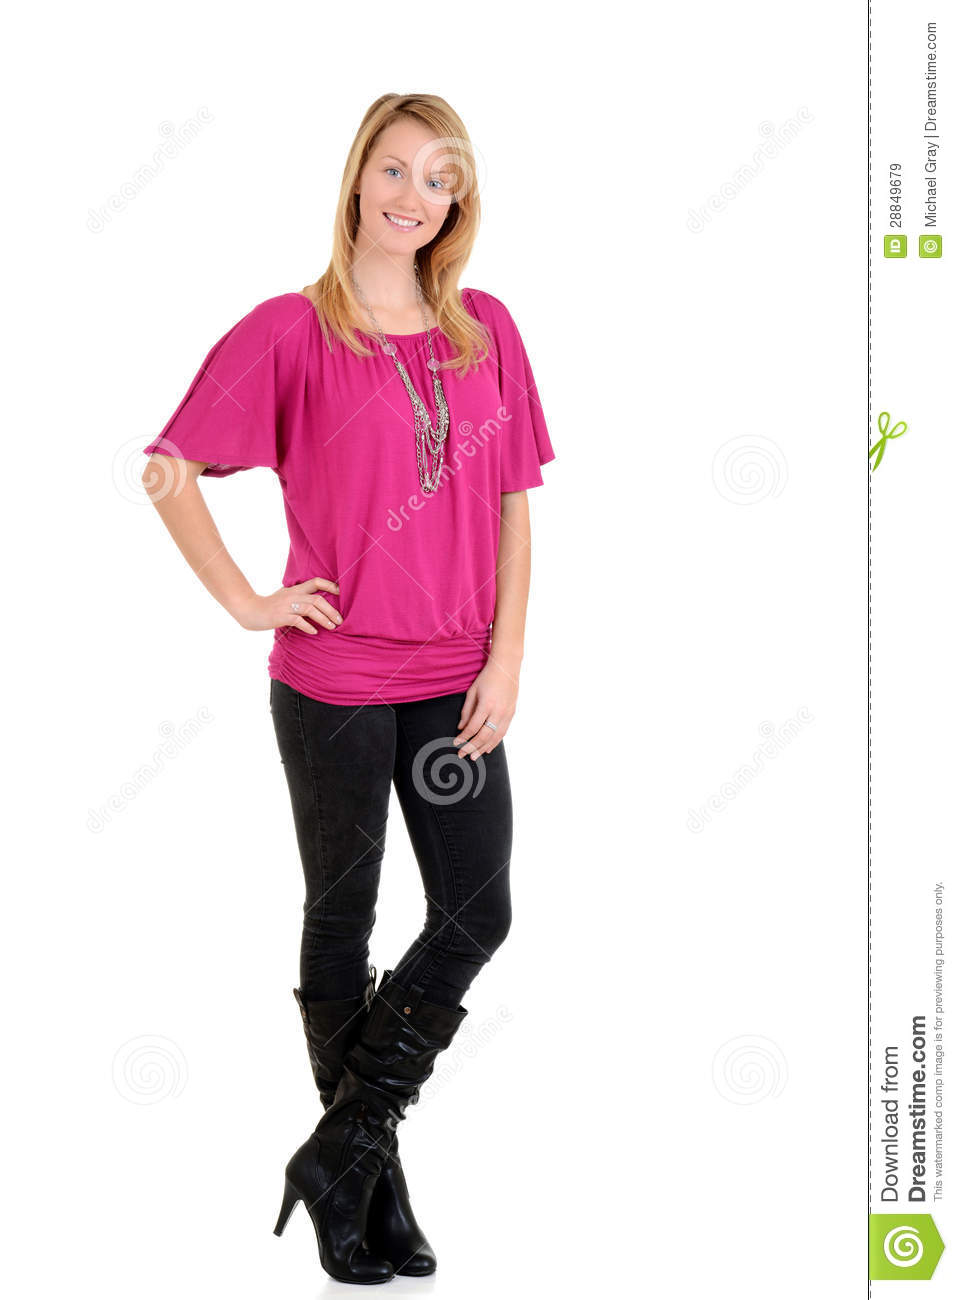 Blond Woman Wearing High Heel Boots Royalty Free Stock